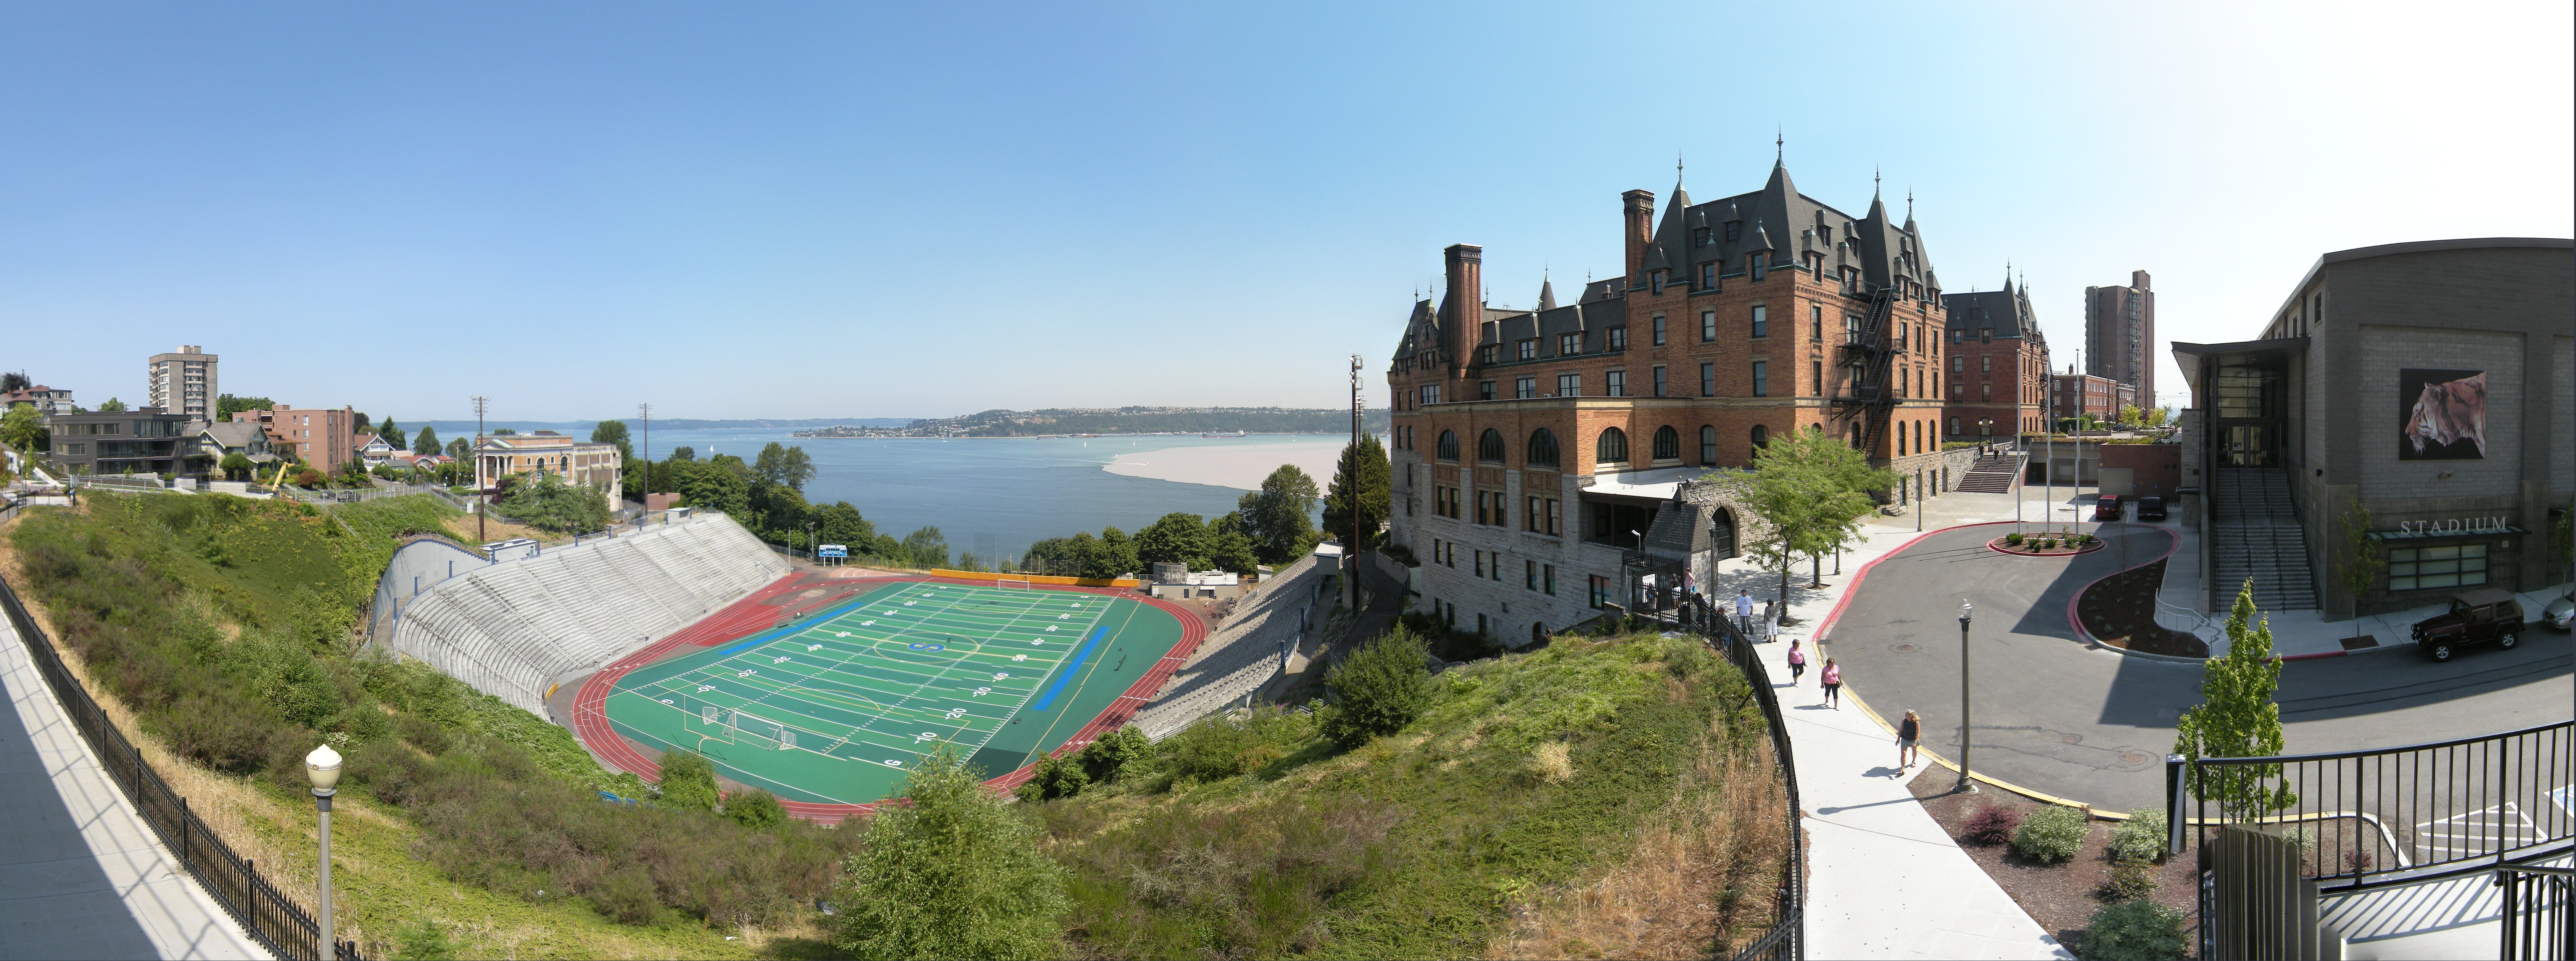 File:Tacoma - Stadium High School pano 01.jpg - Wikimedia ...